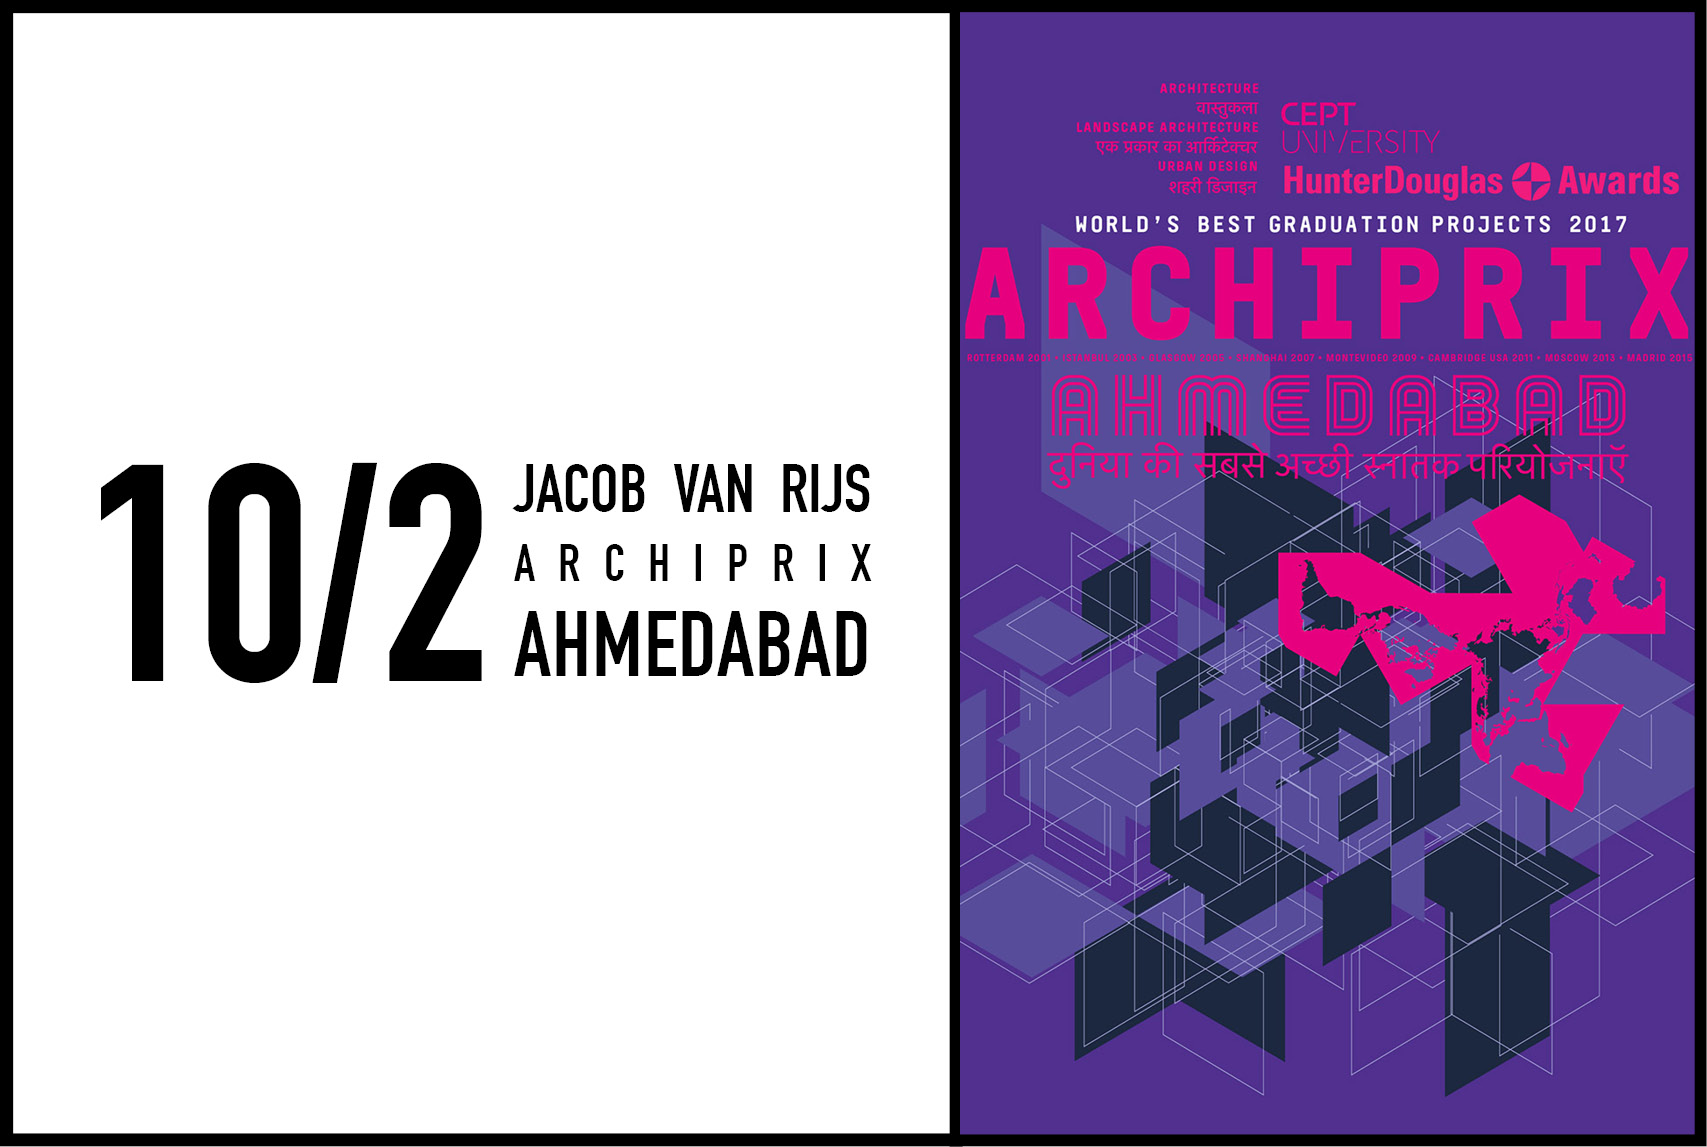 Jacob van Rijs speaking at Archiprix International in Ahmedabad, India, 10 February 2017